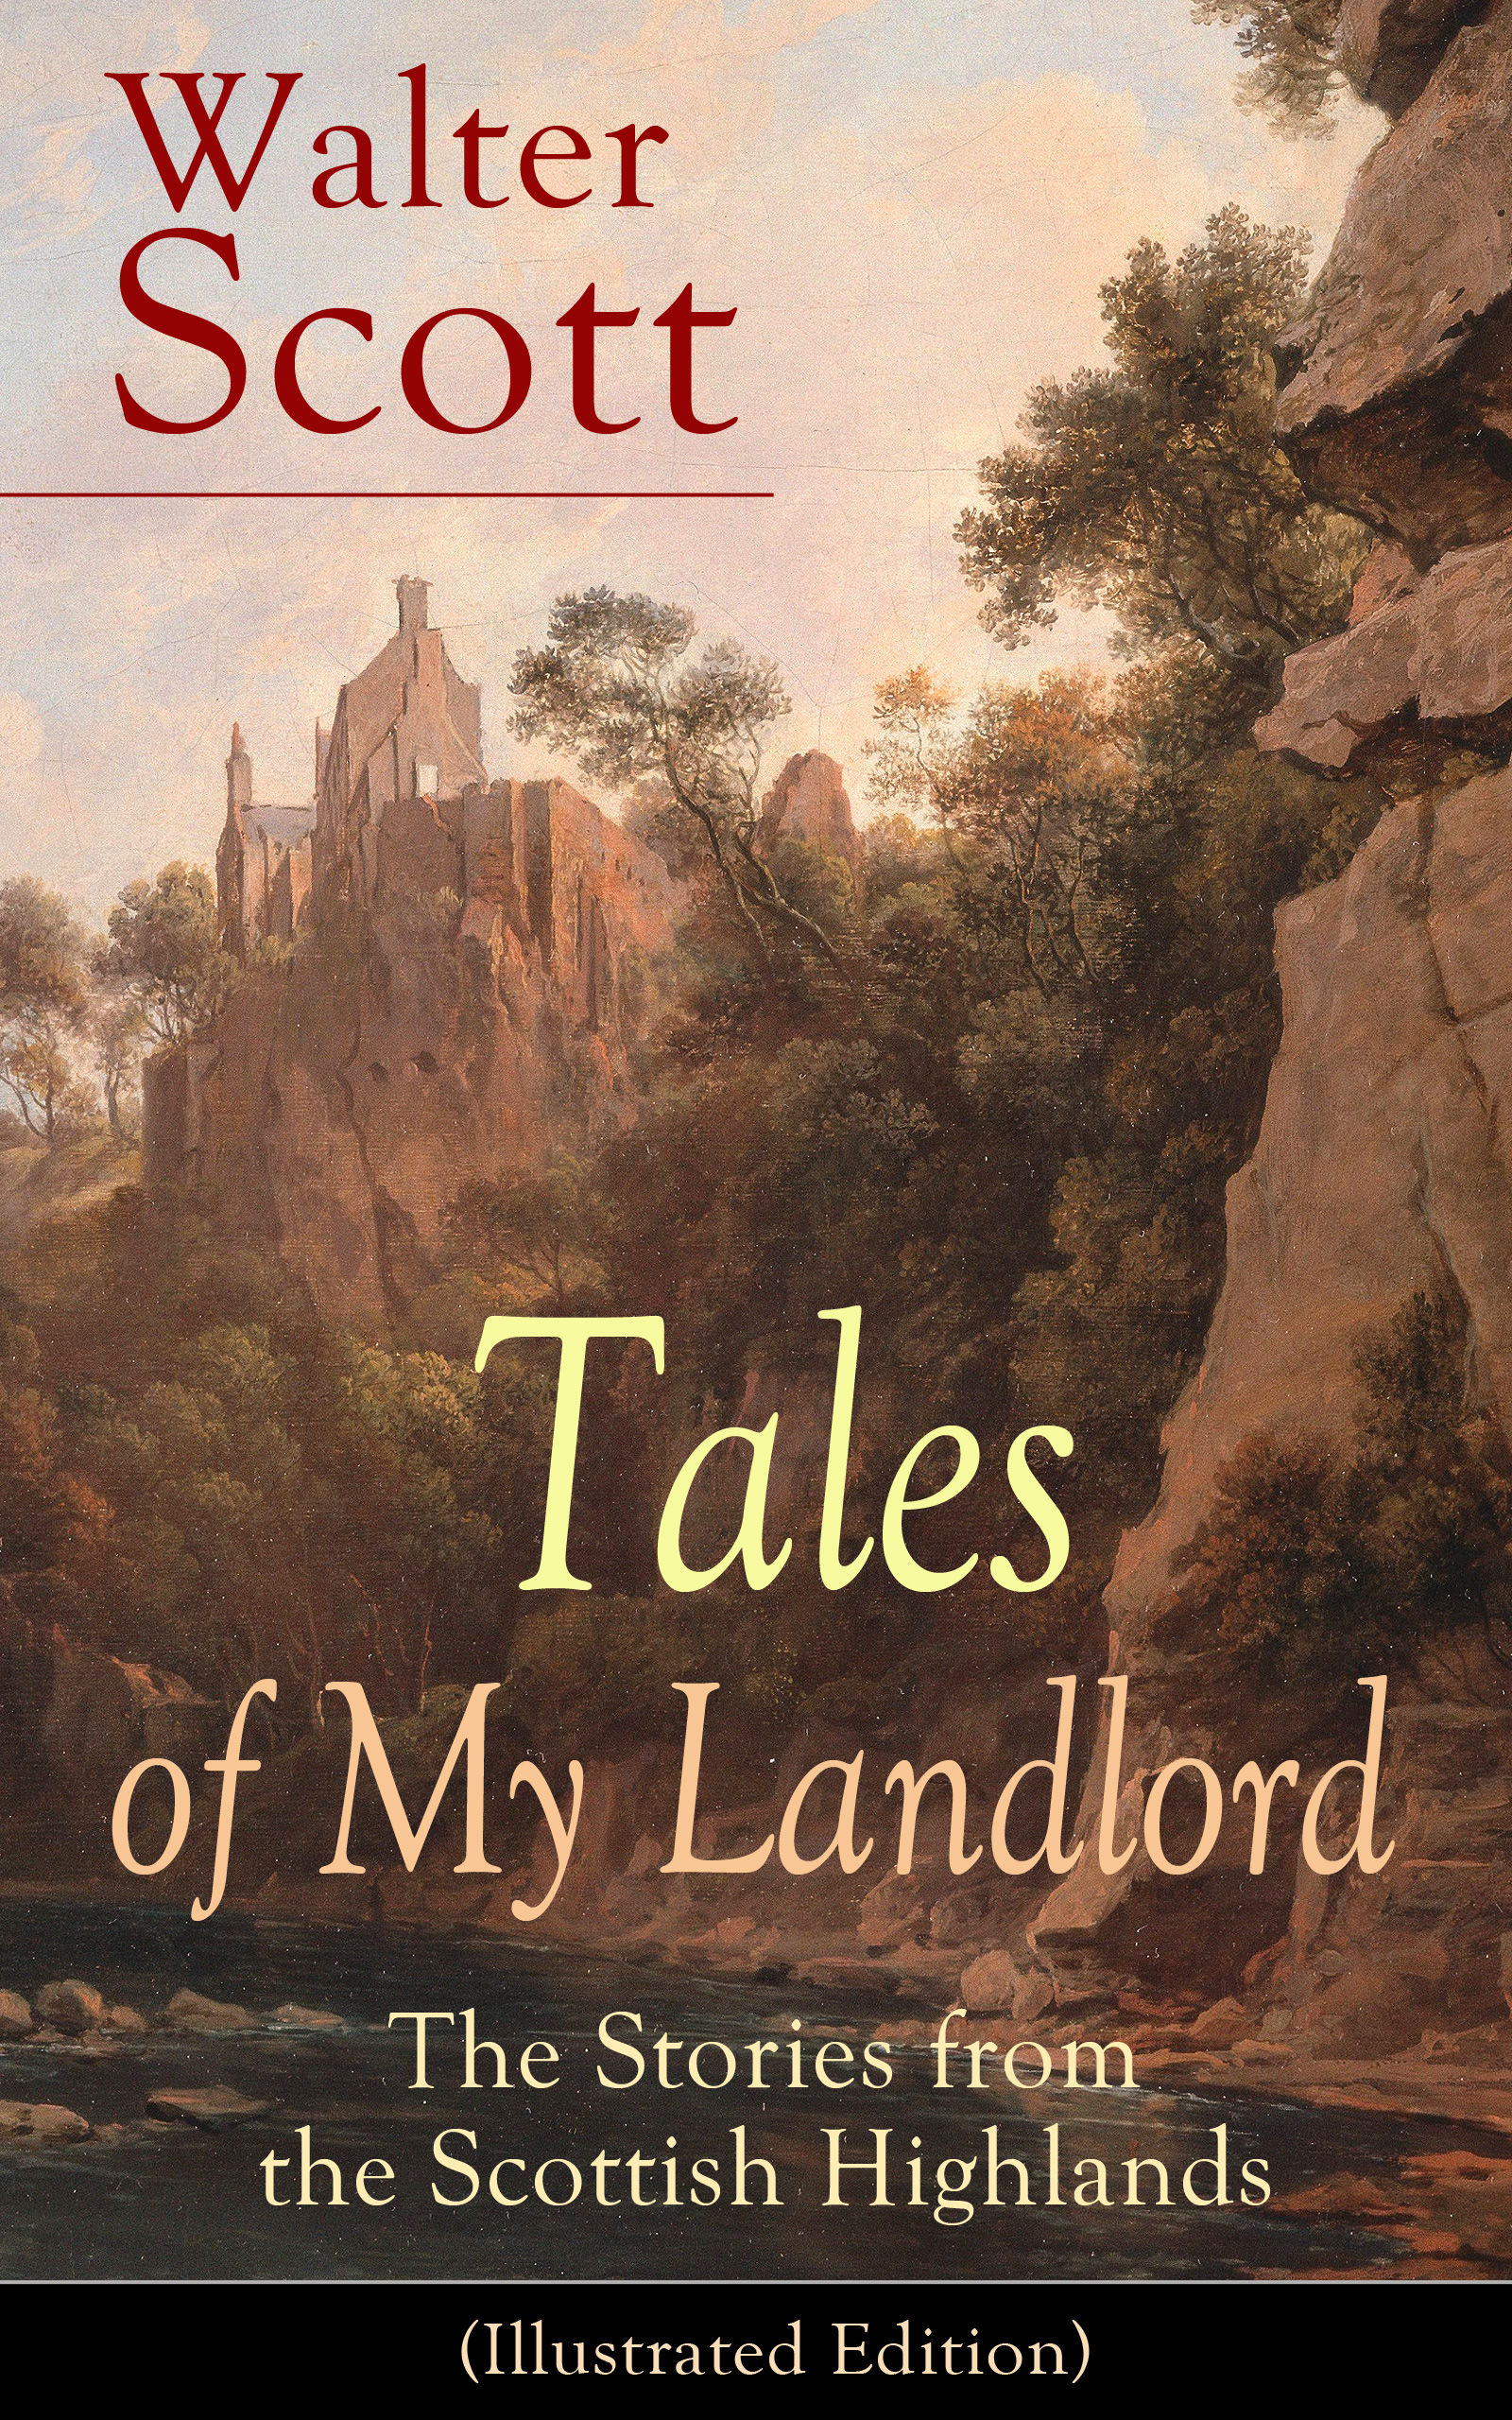 Walter Scott Tales of My Landlord: The Stories from the Scottish Highlands (Illustrated Edition) my first bible stories the nativity